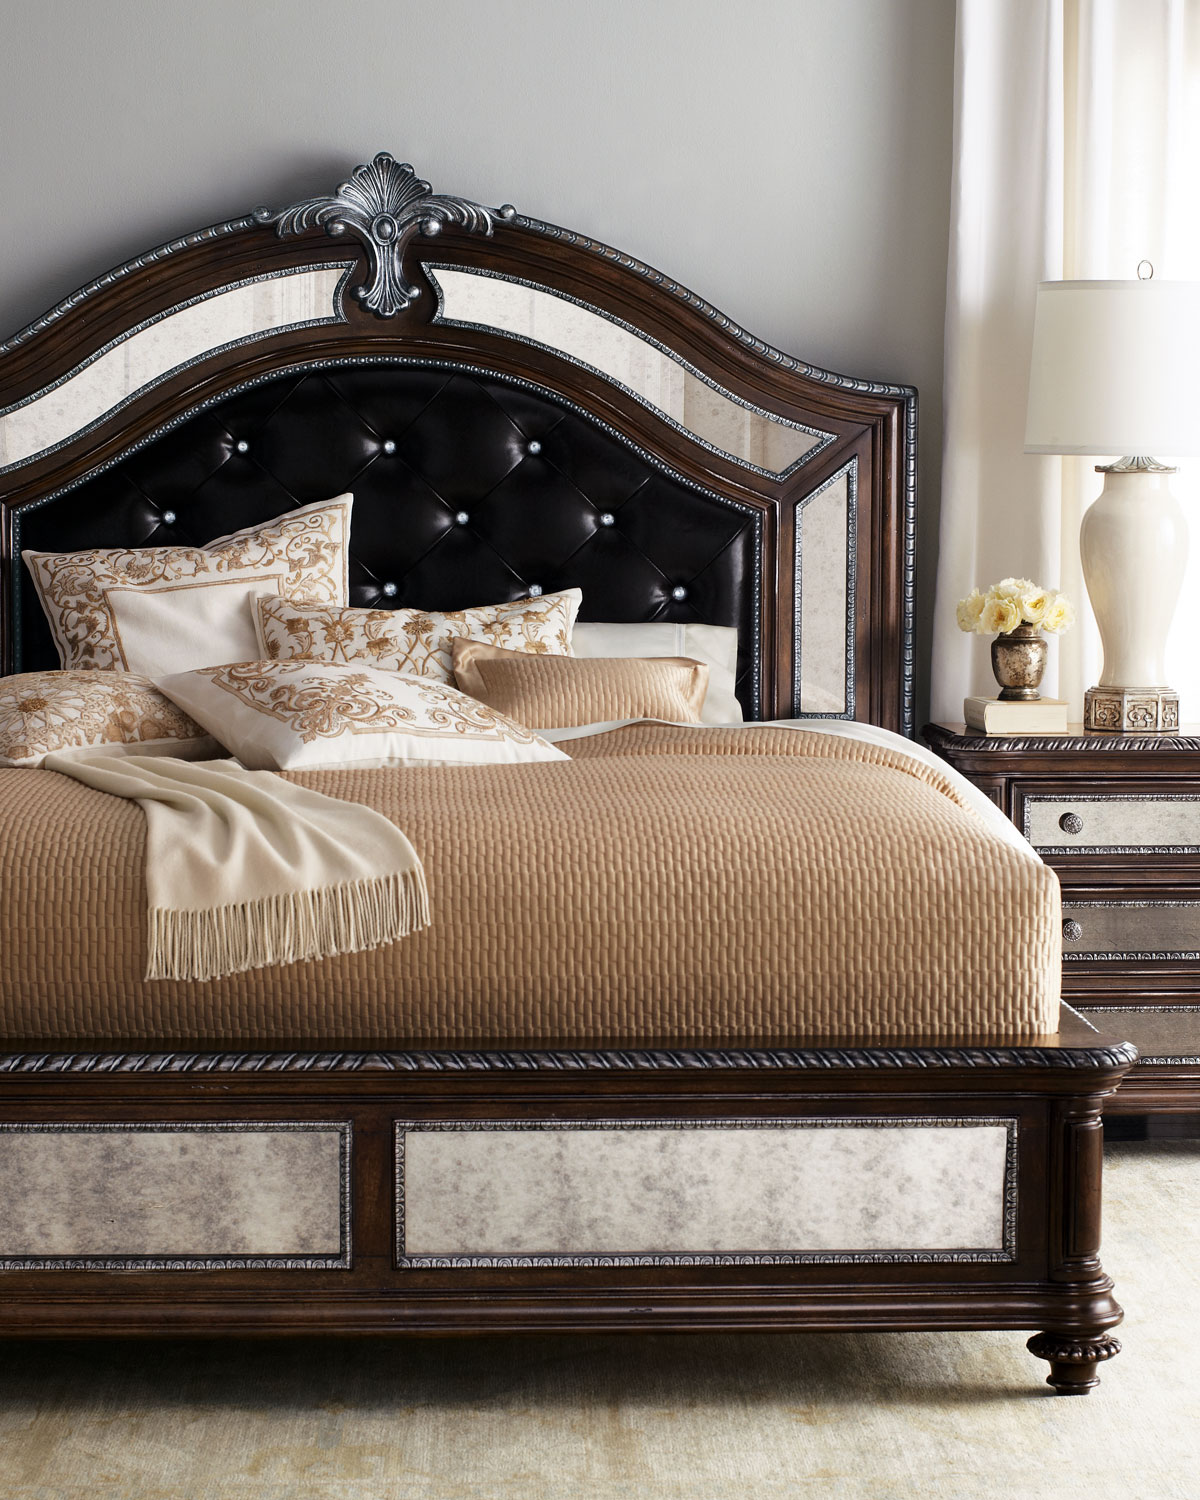 Style spotlight leather beds and headboards betterdecoratingbiblebetterdecoratingbible Beautiful bedroom chairs that make it a joy getting out of bed